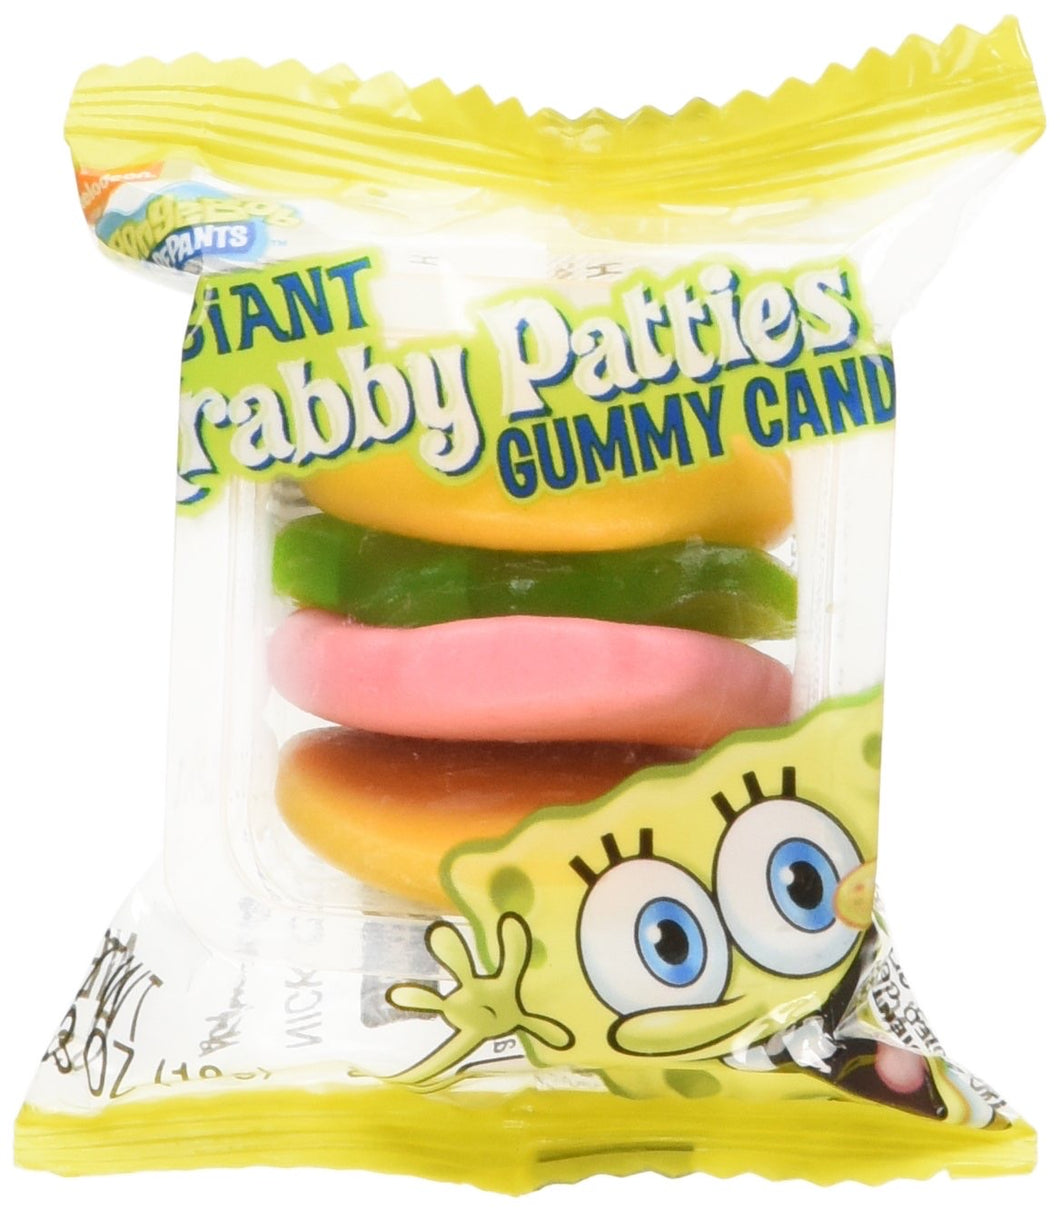 Krabby Patties Gummy Candy 0.62 oz